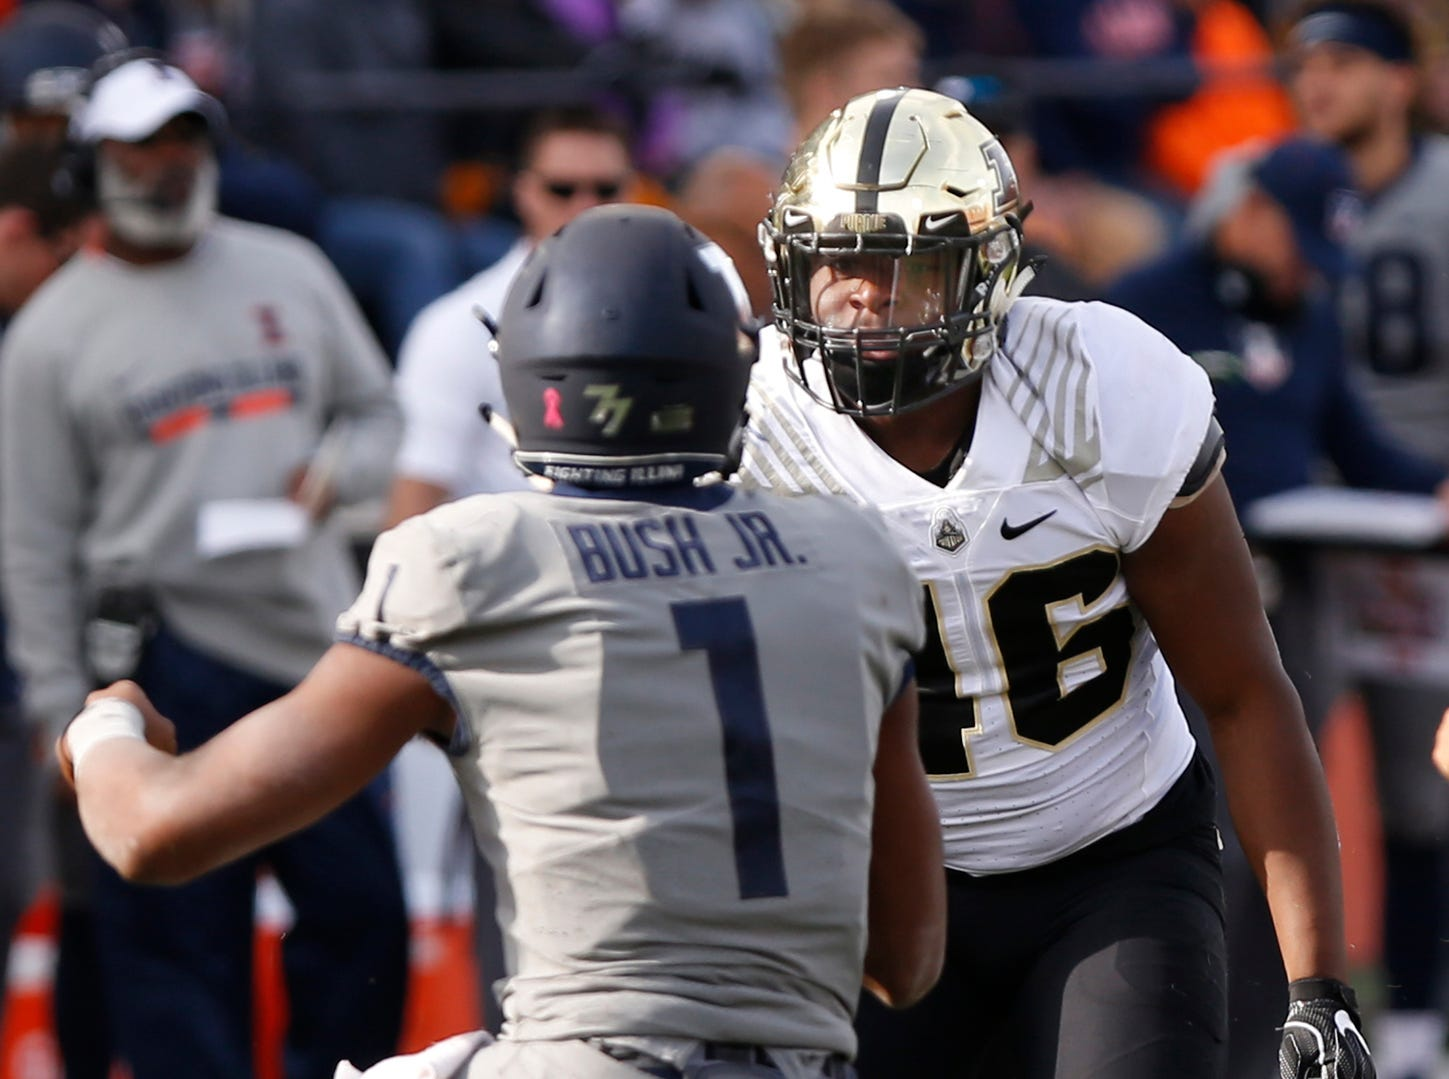 Cornel Jones of Purdue glares at AJ Bush Jr. after delivering a hard hit to the Illinois quarterback in the first half Saturday, October 13, 2018, in Champaign, Illinois. Purdue defeated Illinois 46-7.